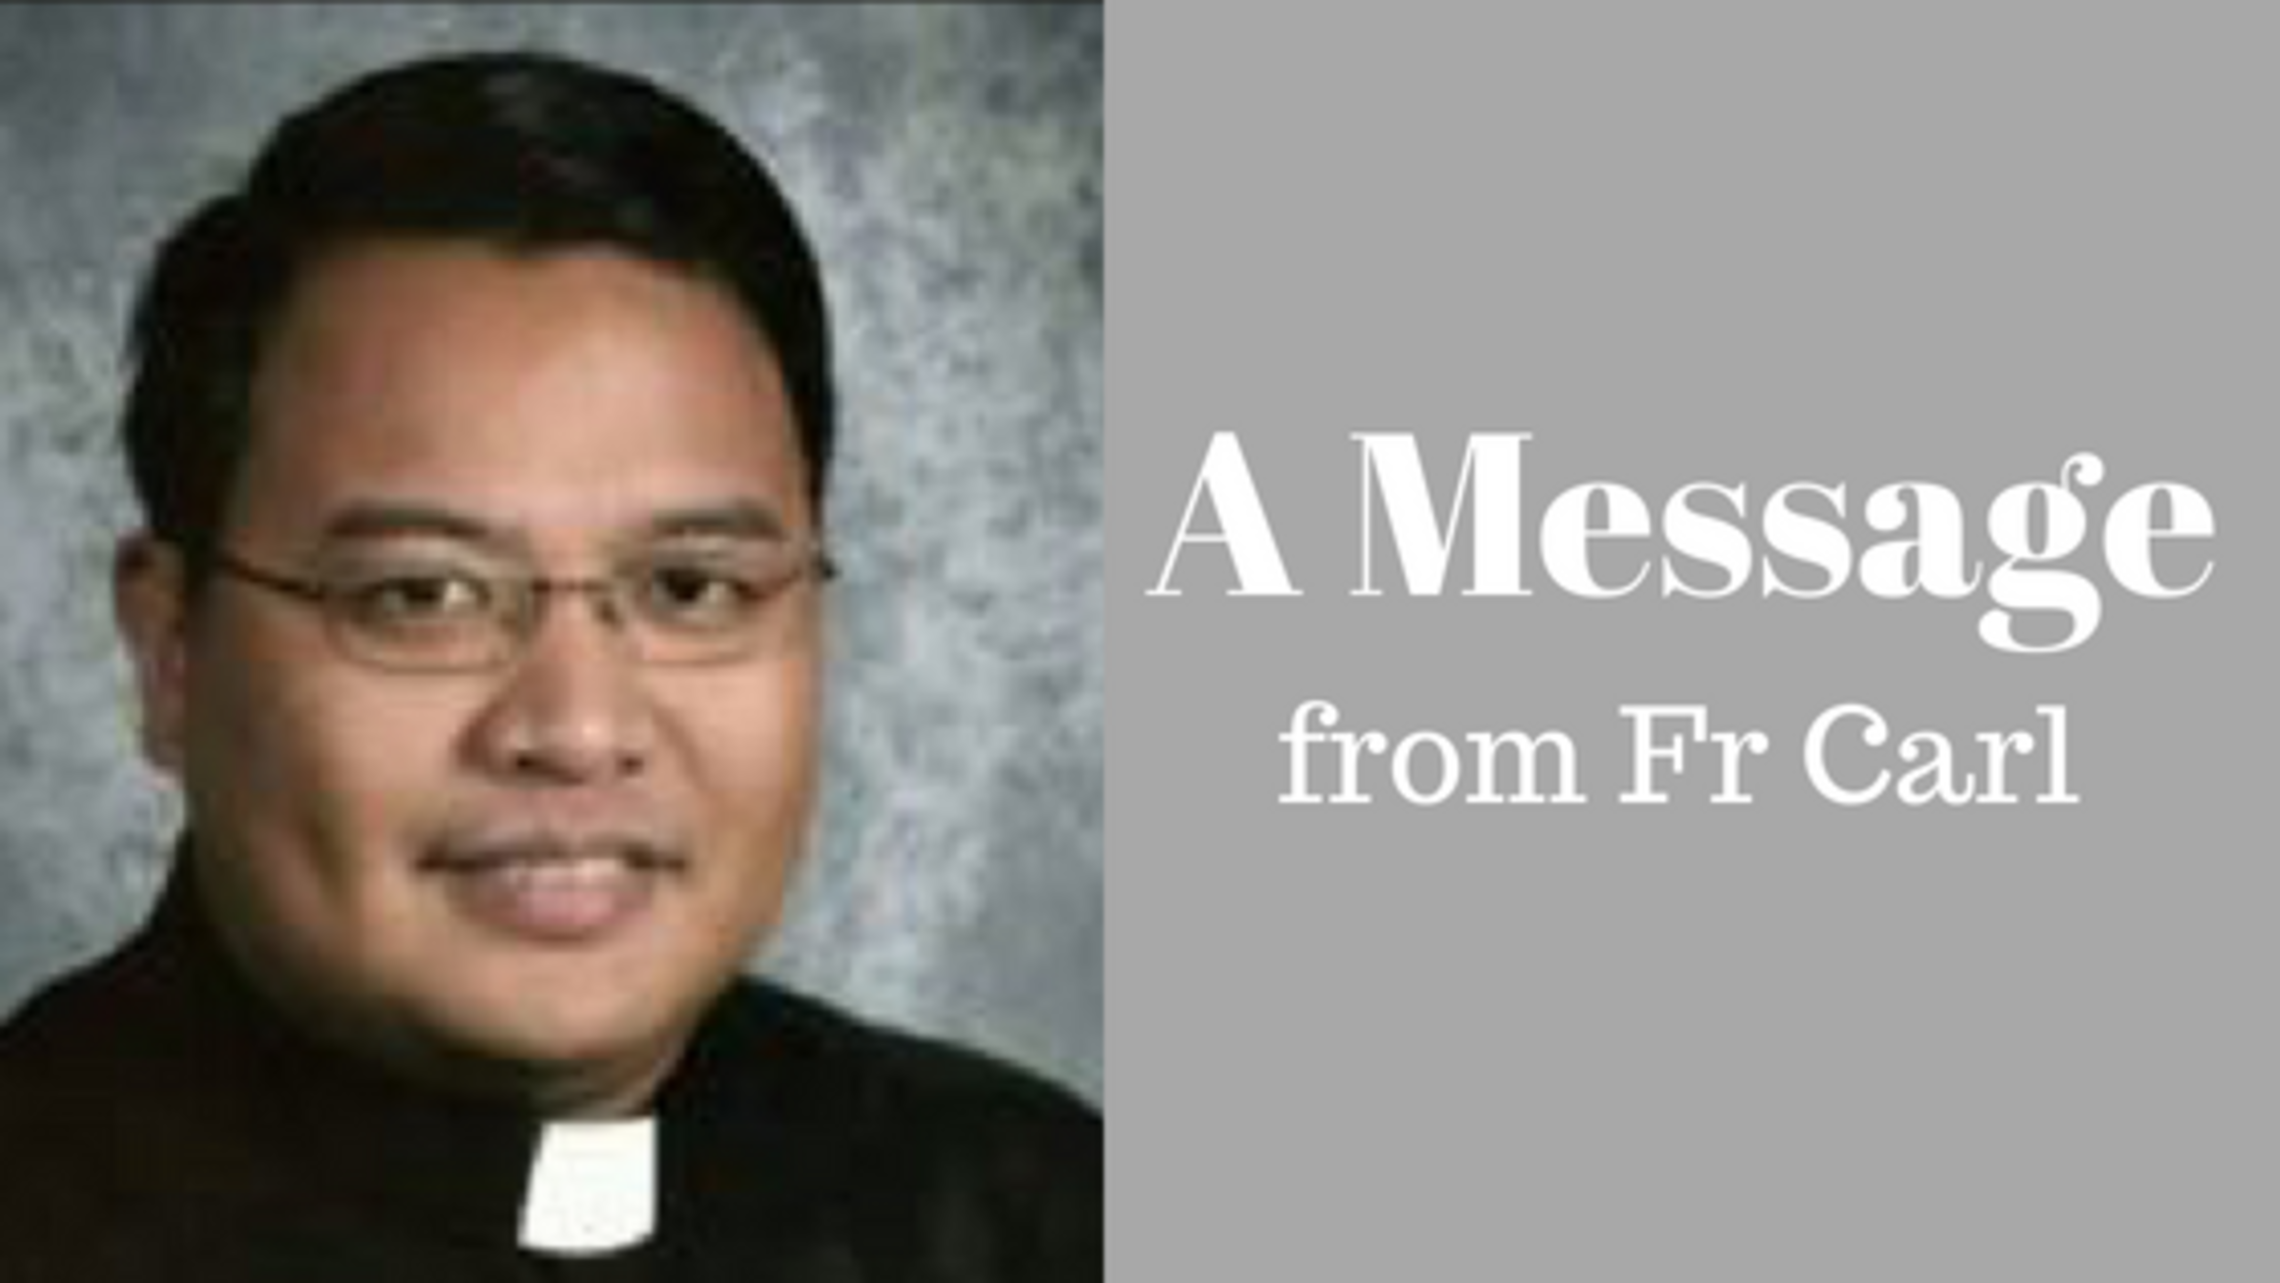 From Fr Carl